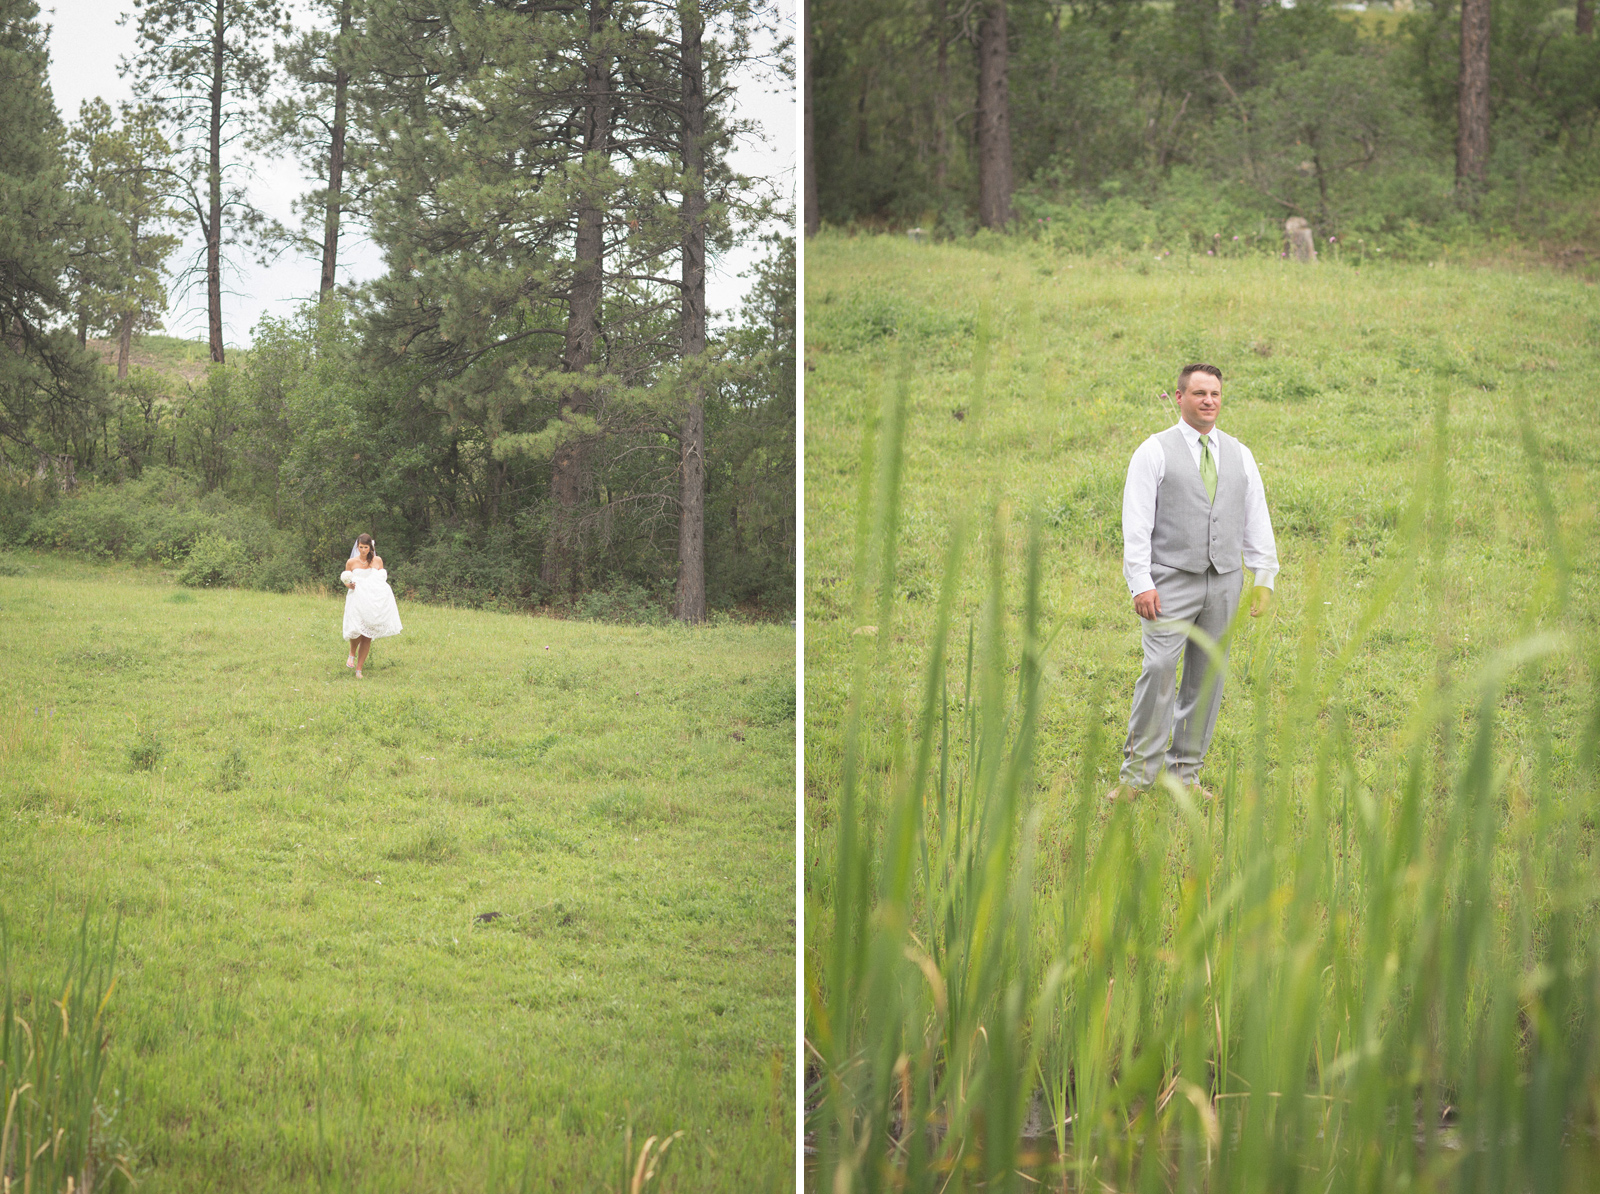 060-groom-wedding-cabin-woods-forest-pictures-photos-dress-photography-portraits-wedding-party-party